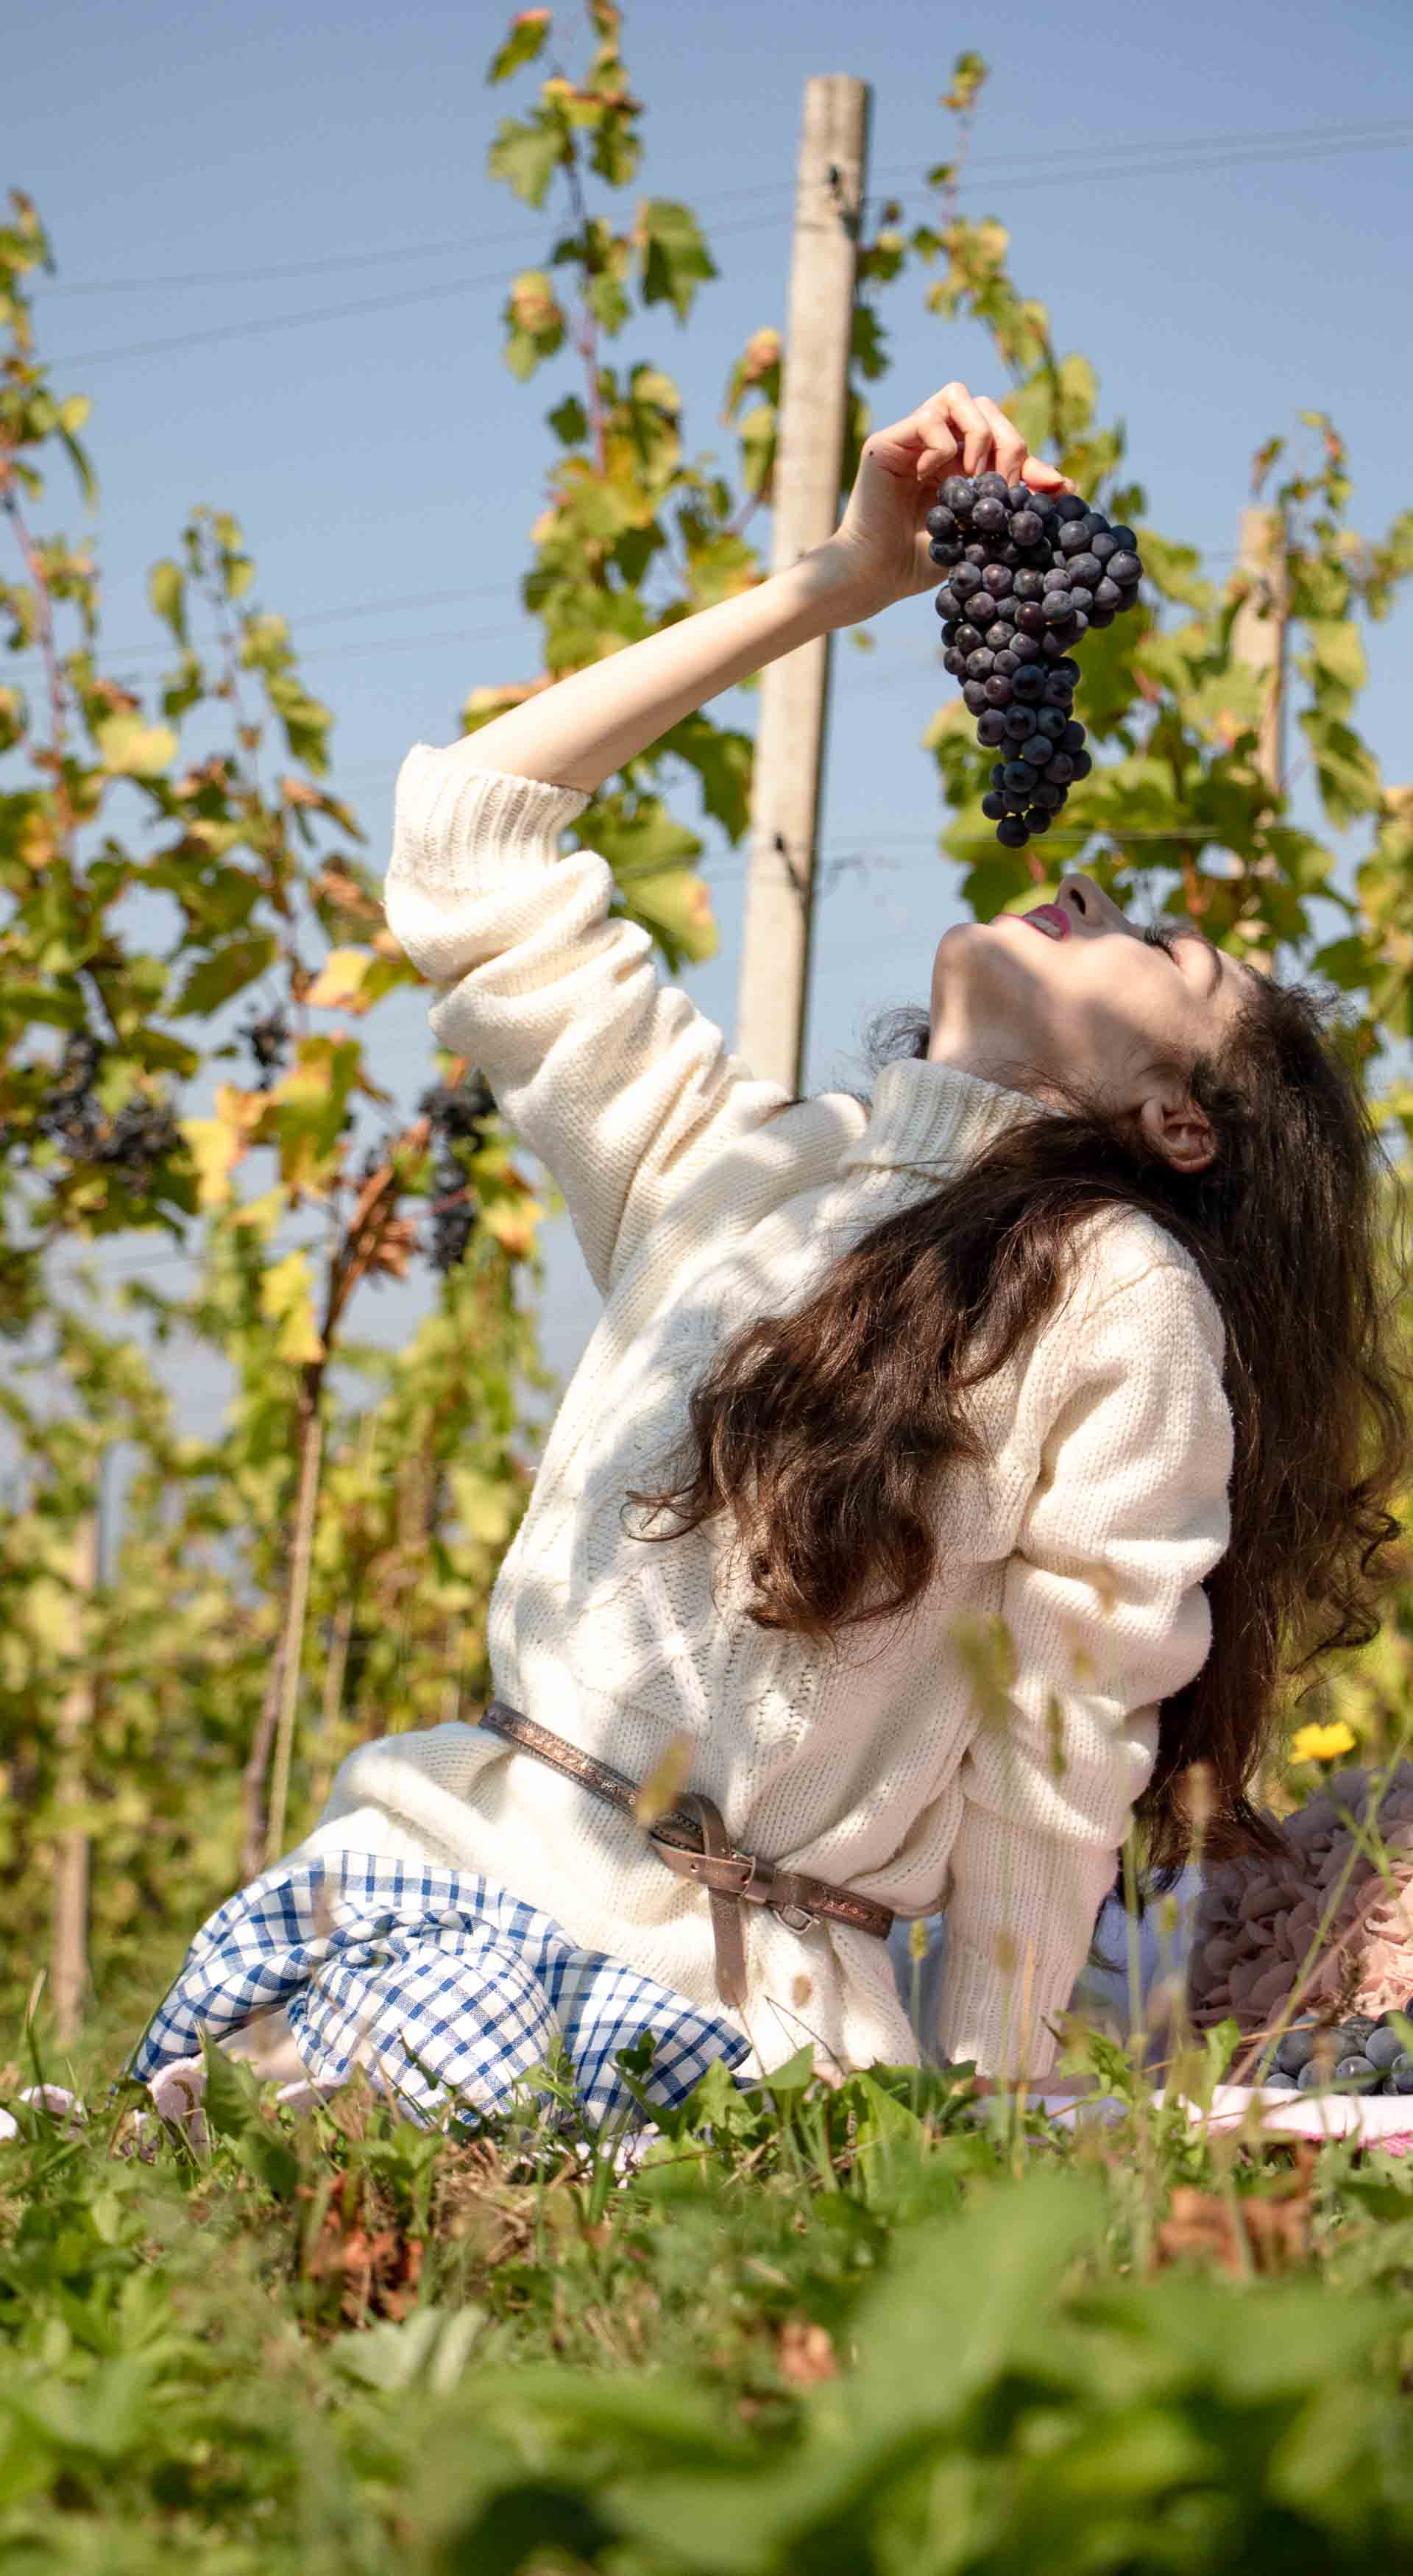 Beautiful Slovenian Fashion Blogger Veronika Lipar of Brunette from Wall Street wearing blue and white check button down Mango dress, oversized white turtleneck sweater, dangling belt, for fall picnic in countryside eating grapes